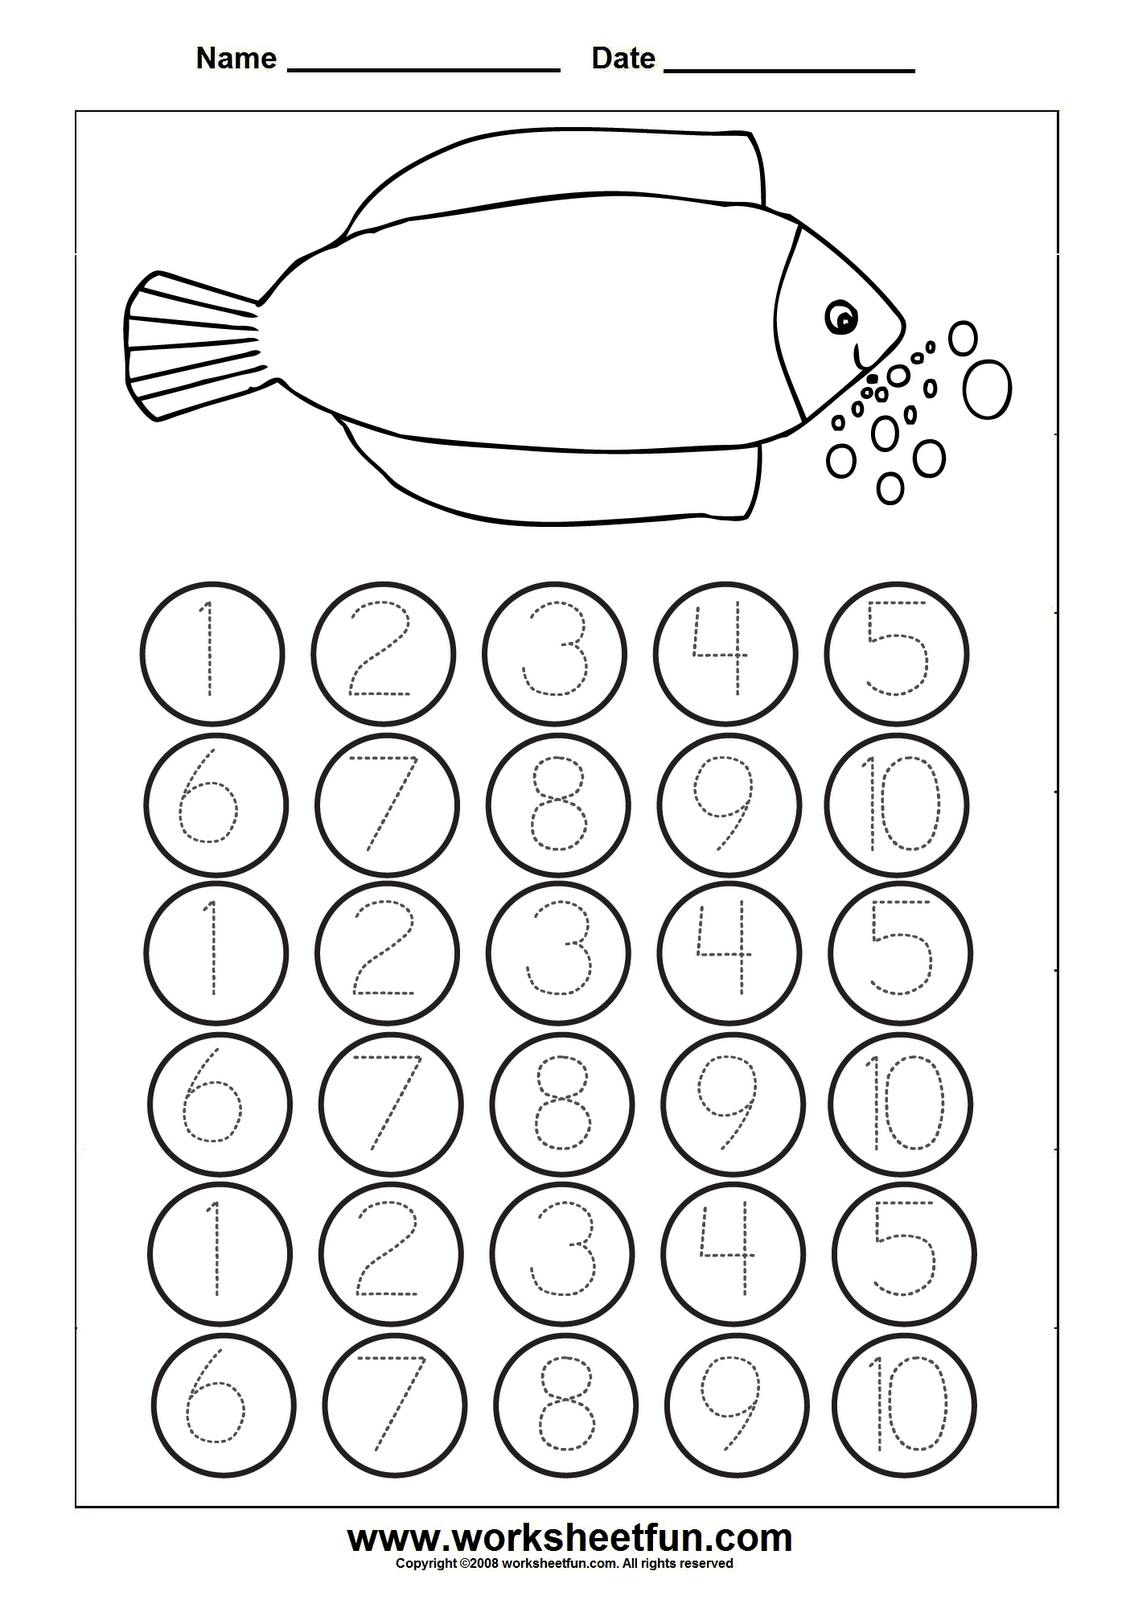 Number Worksheets For Kindergarten : Practice writing numbers worksheet number